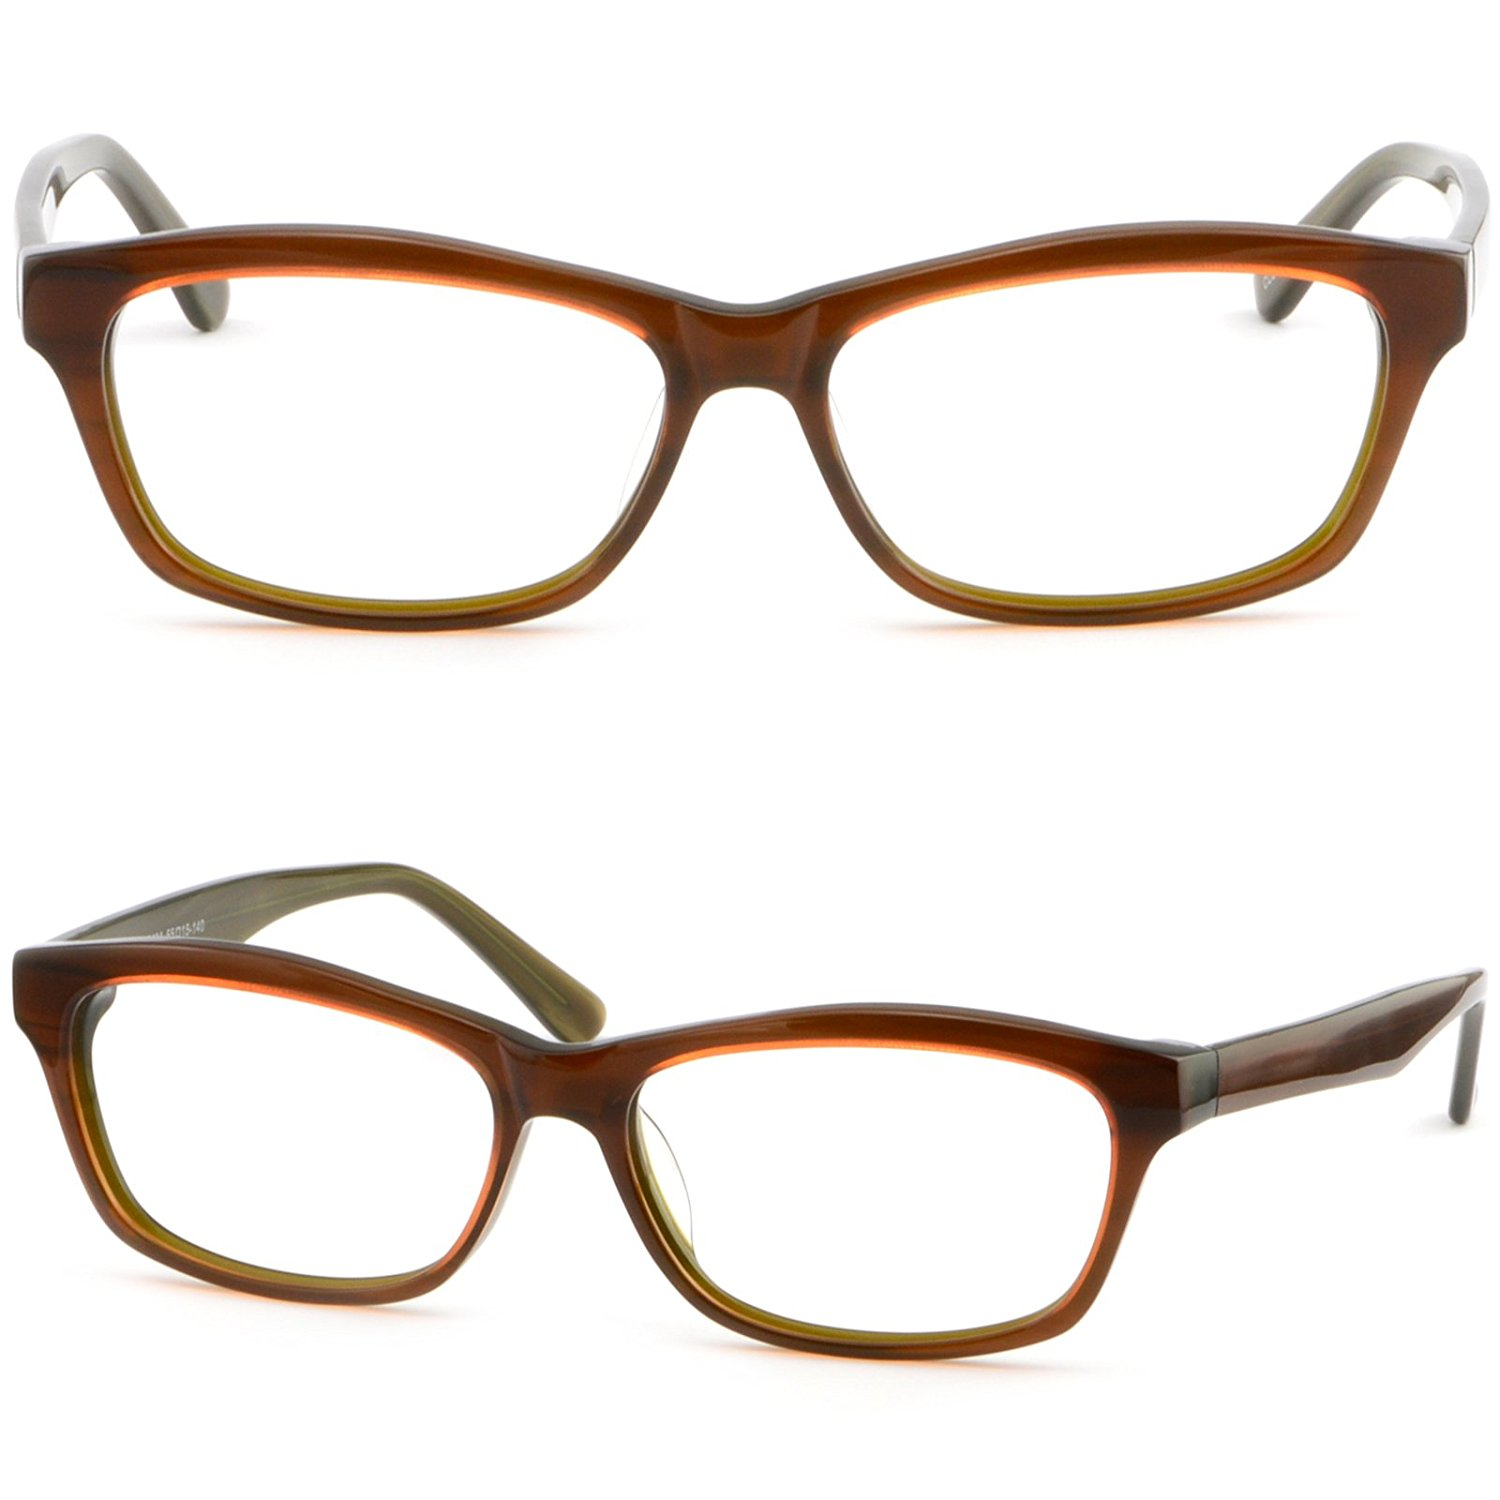 Rectangular Unisex Frames Prescription Glasses Sunglasses Acetate Plastic Brown